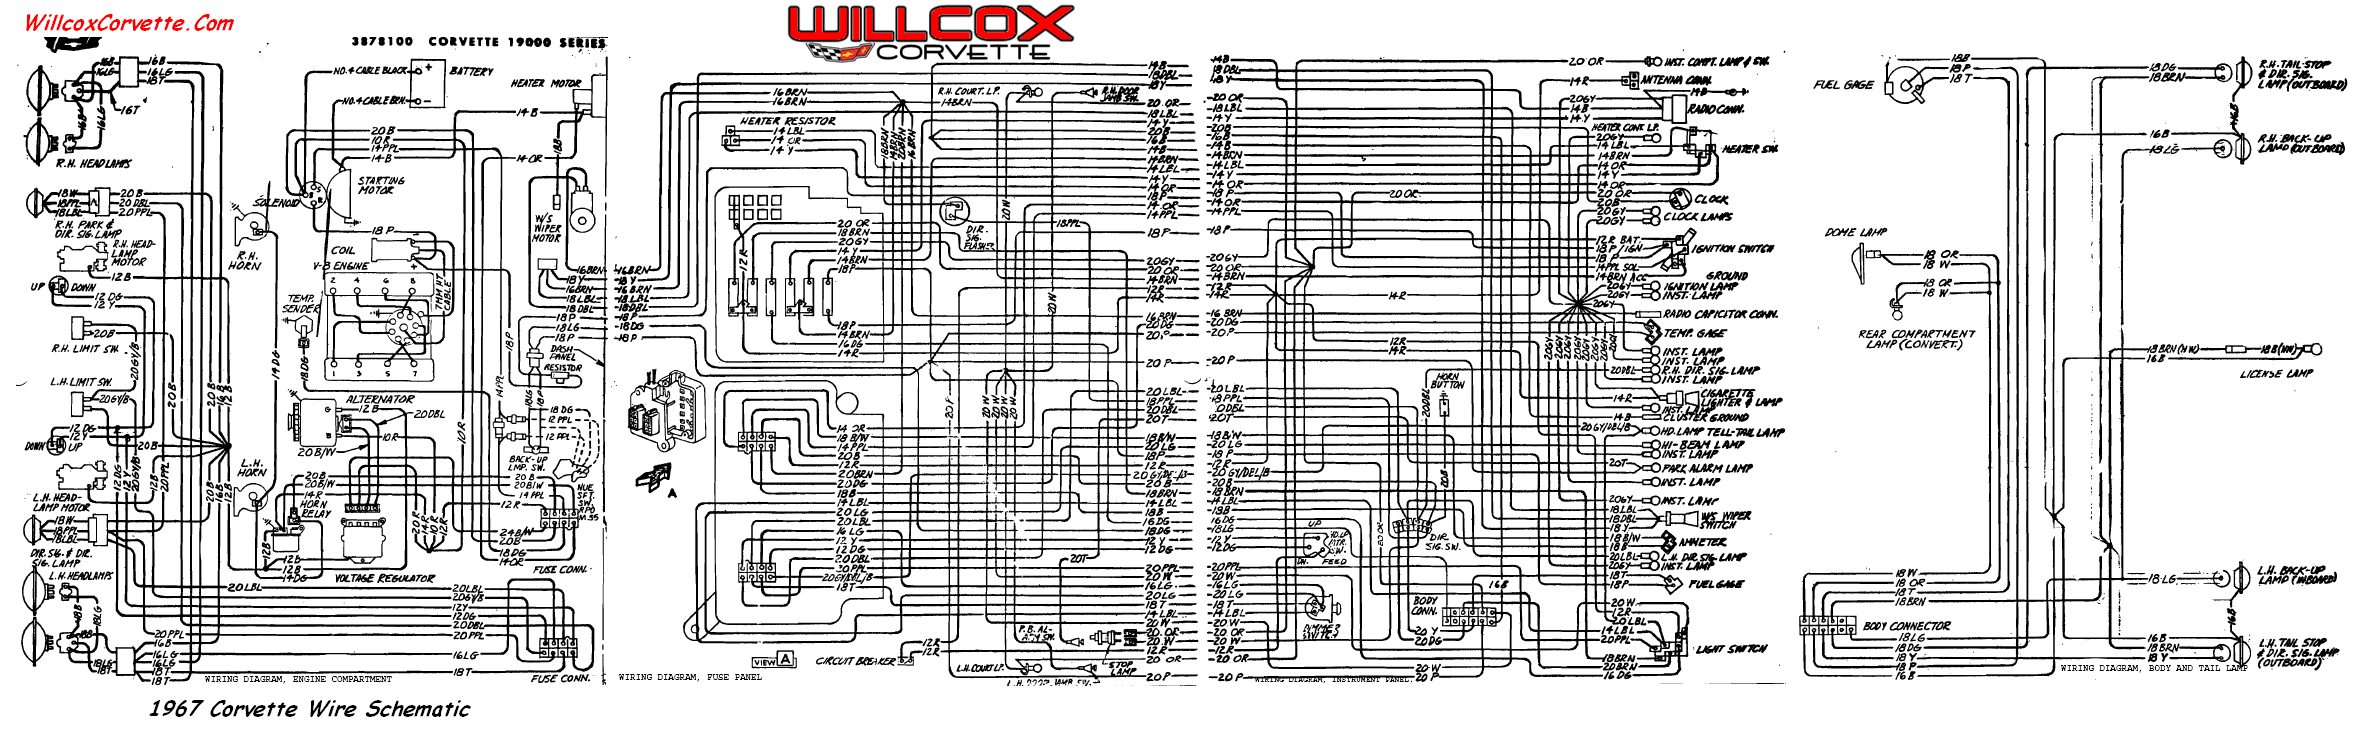 67 wire schematic for tracing wires 1994 corvette wiring diagram 1984 chevy truck wiring diagrams 2000 C5 Corvette Wiring Diagram at gsmx.co